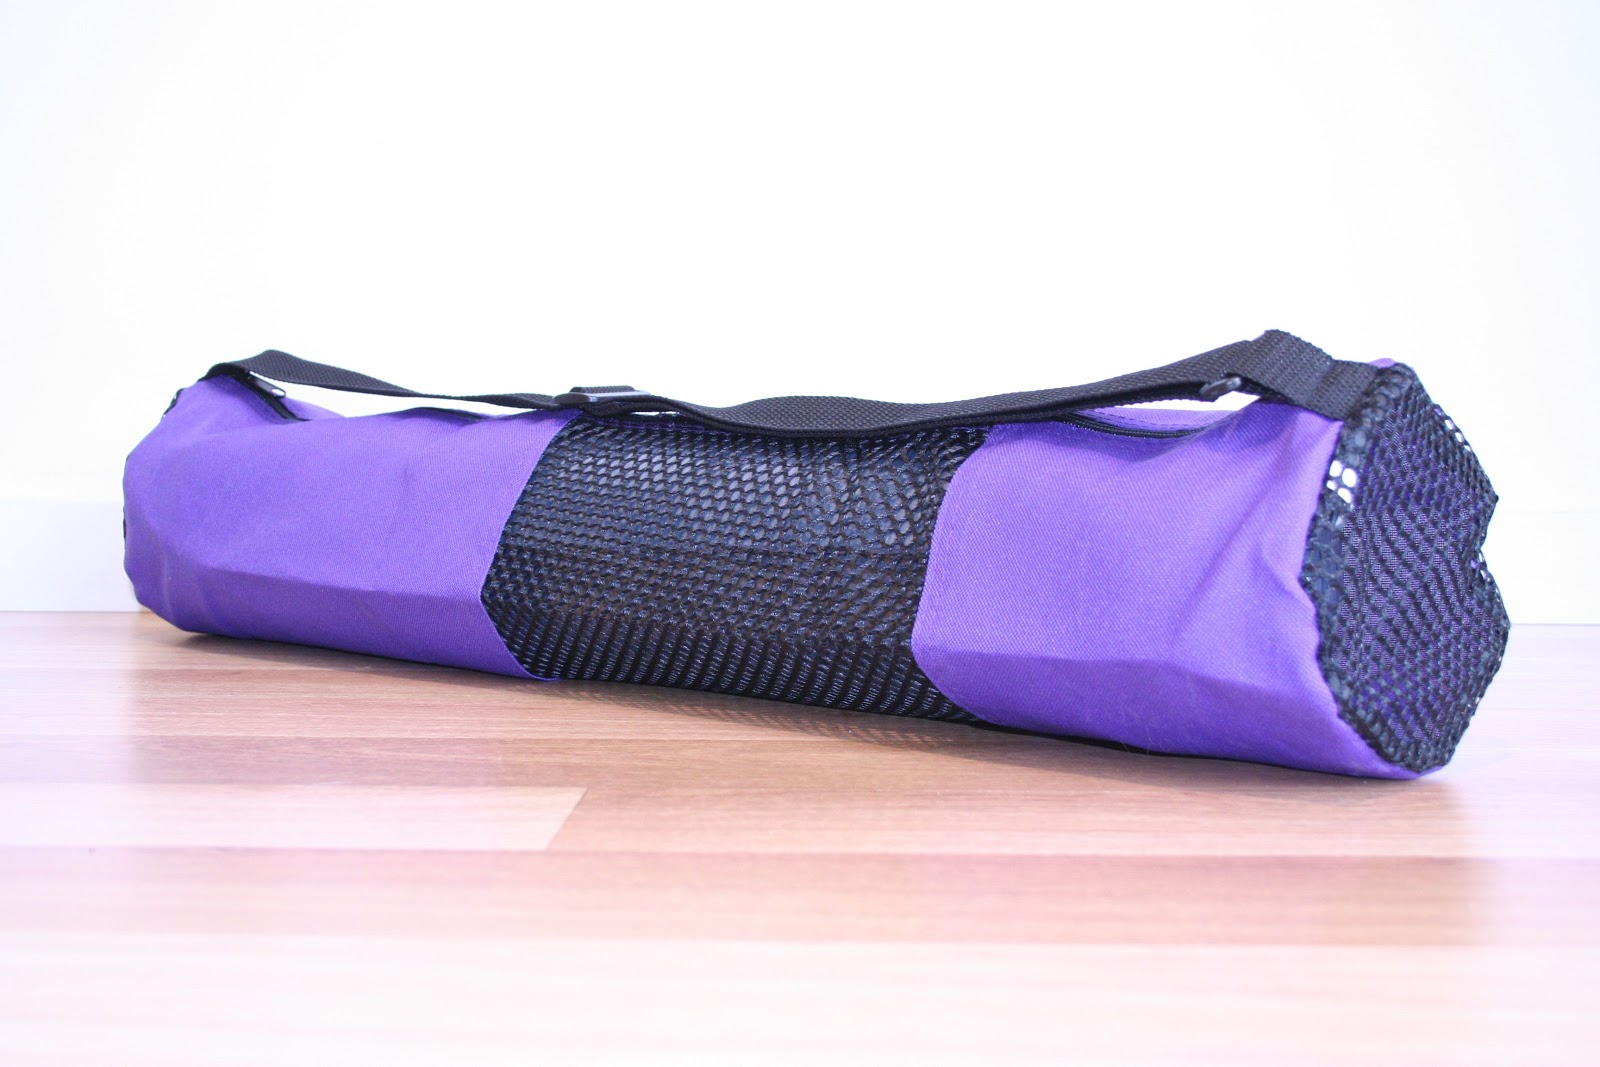 Cardio Trek Toronto Personal Trainer How To Buy A Yoga Mat